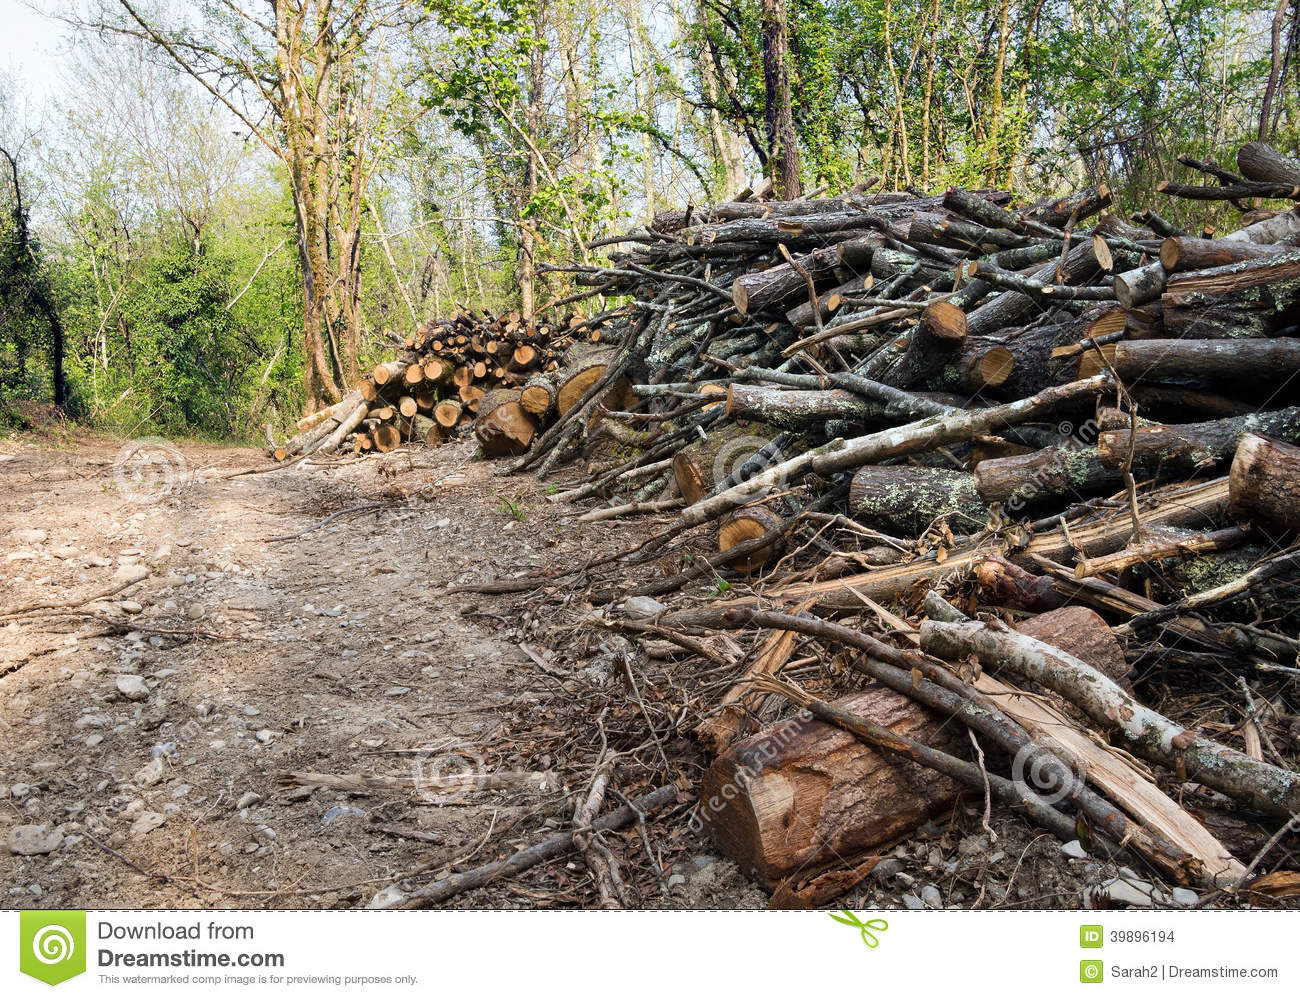 Woodland Management Or Cutting Down Trees Habitat